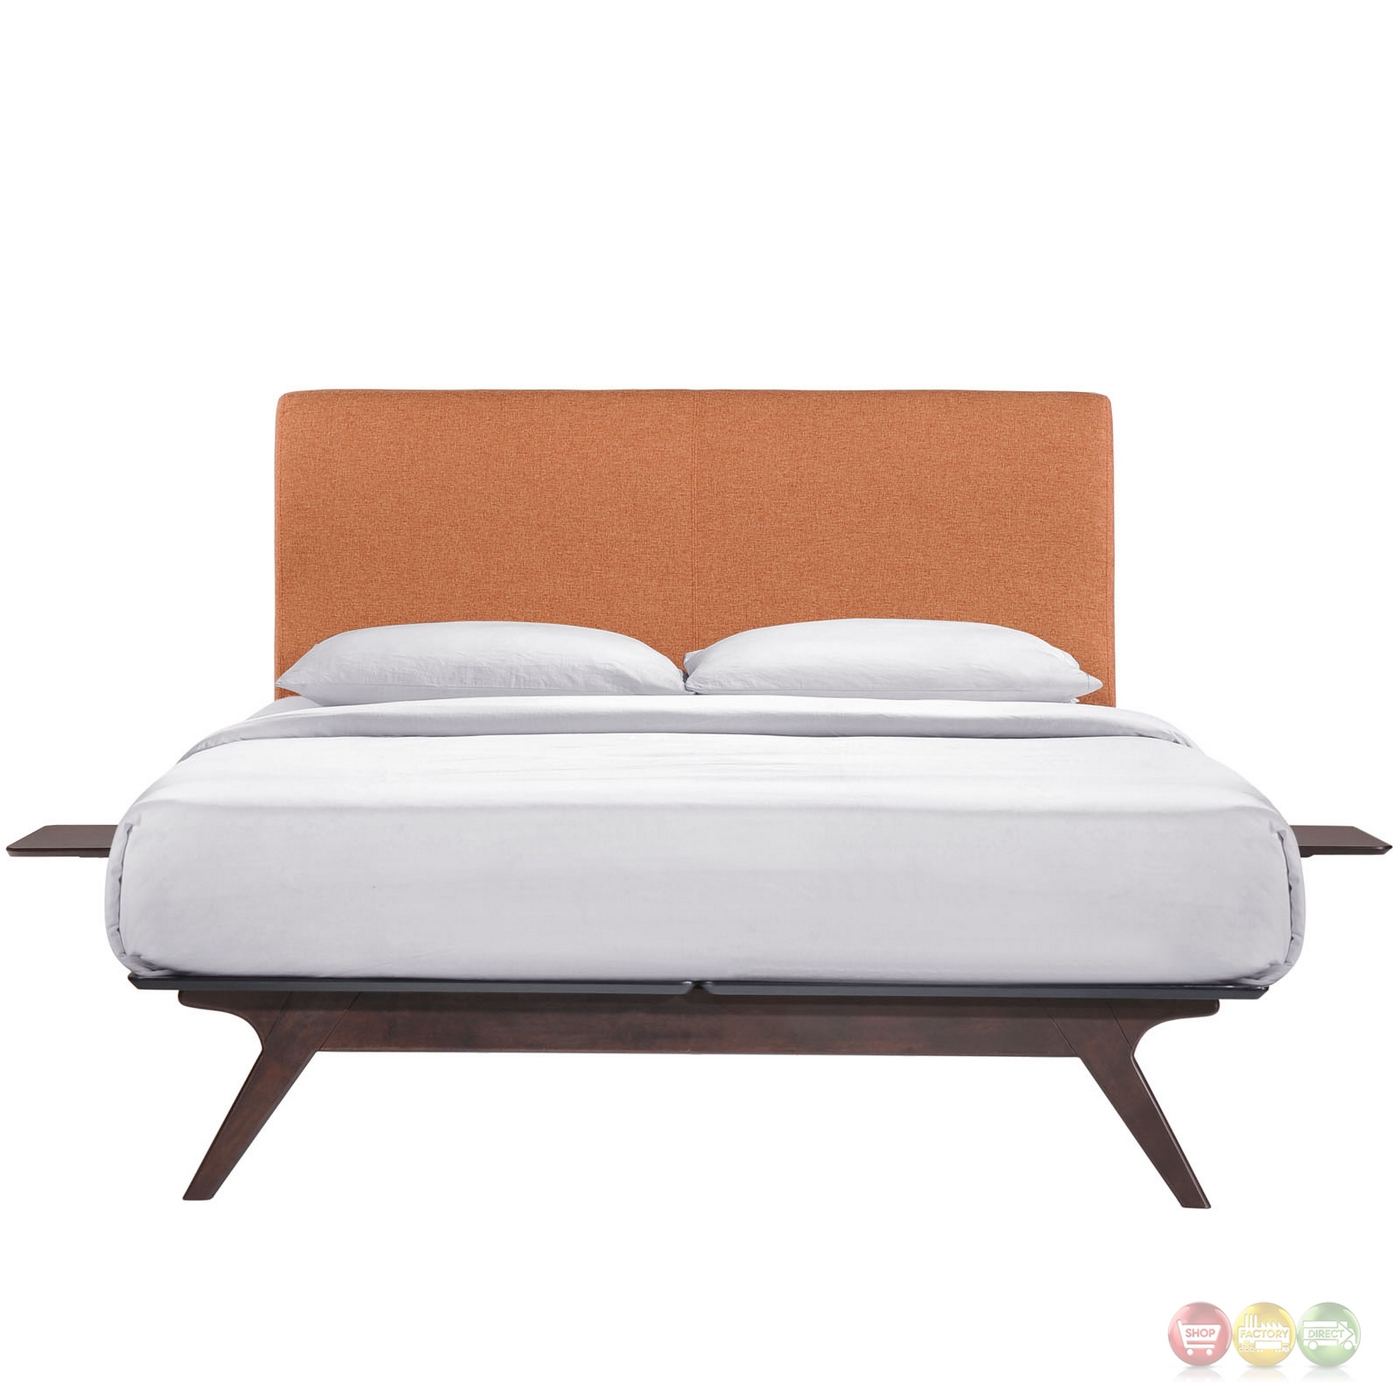 Tracy mid century upholstered king platform bed with Platform king bed